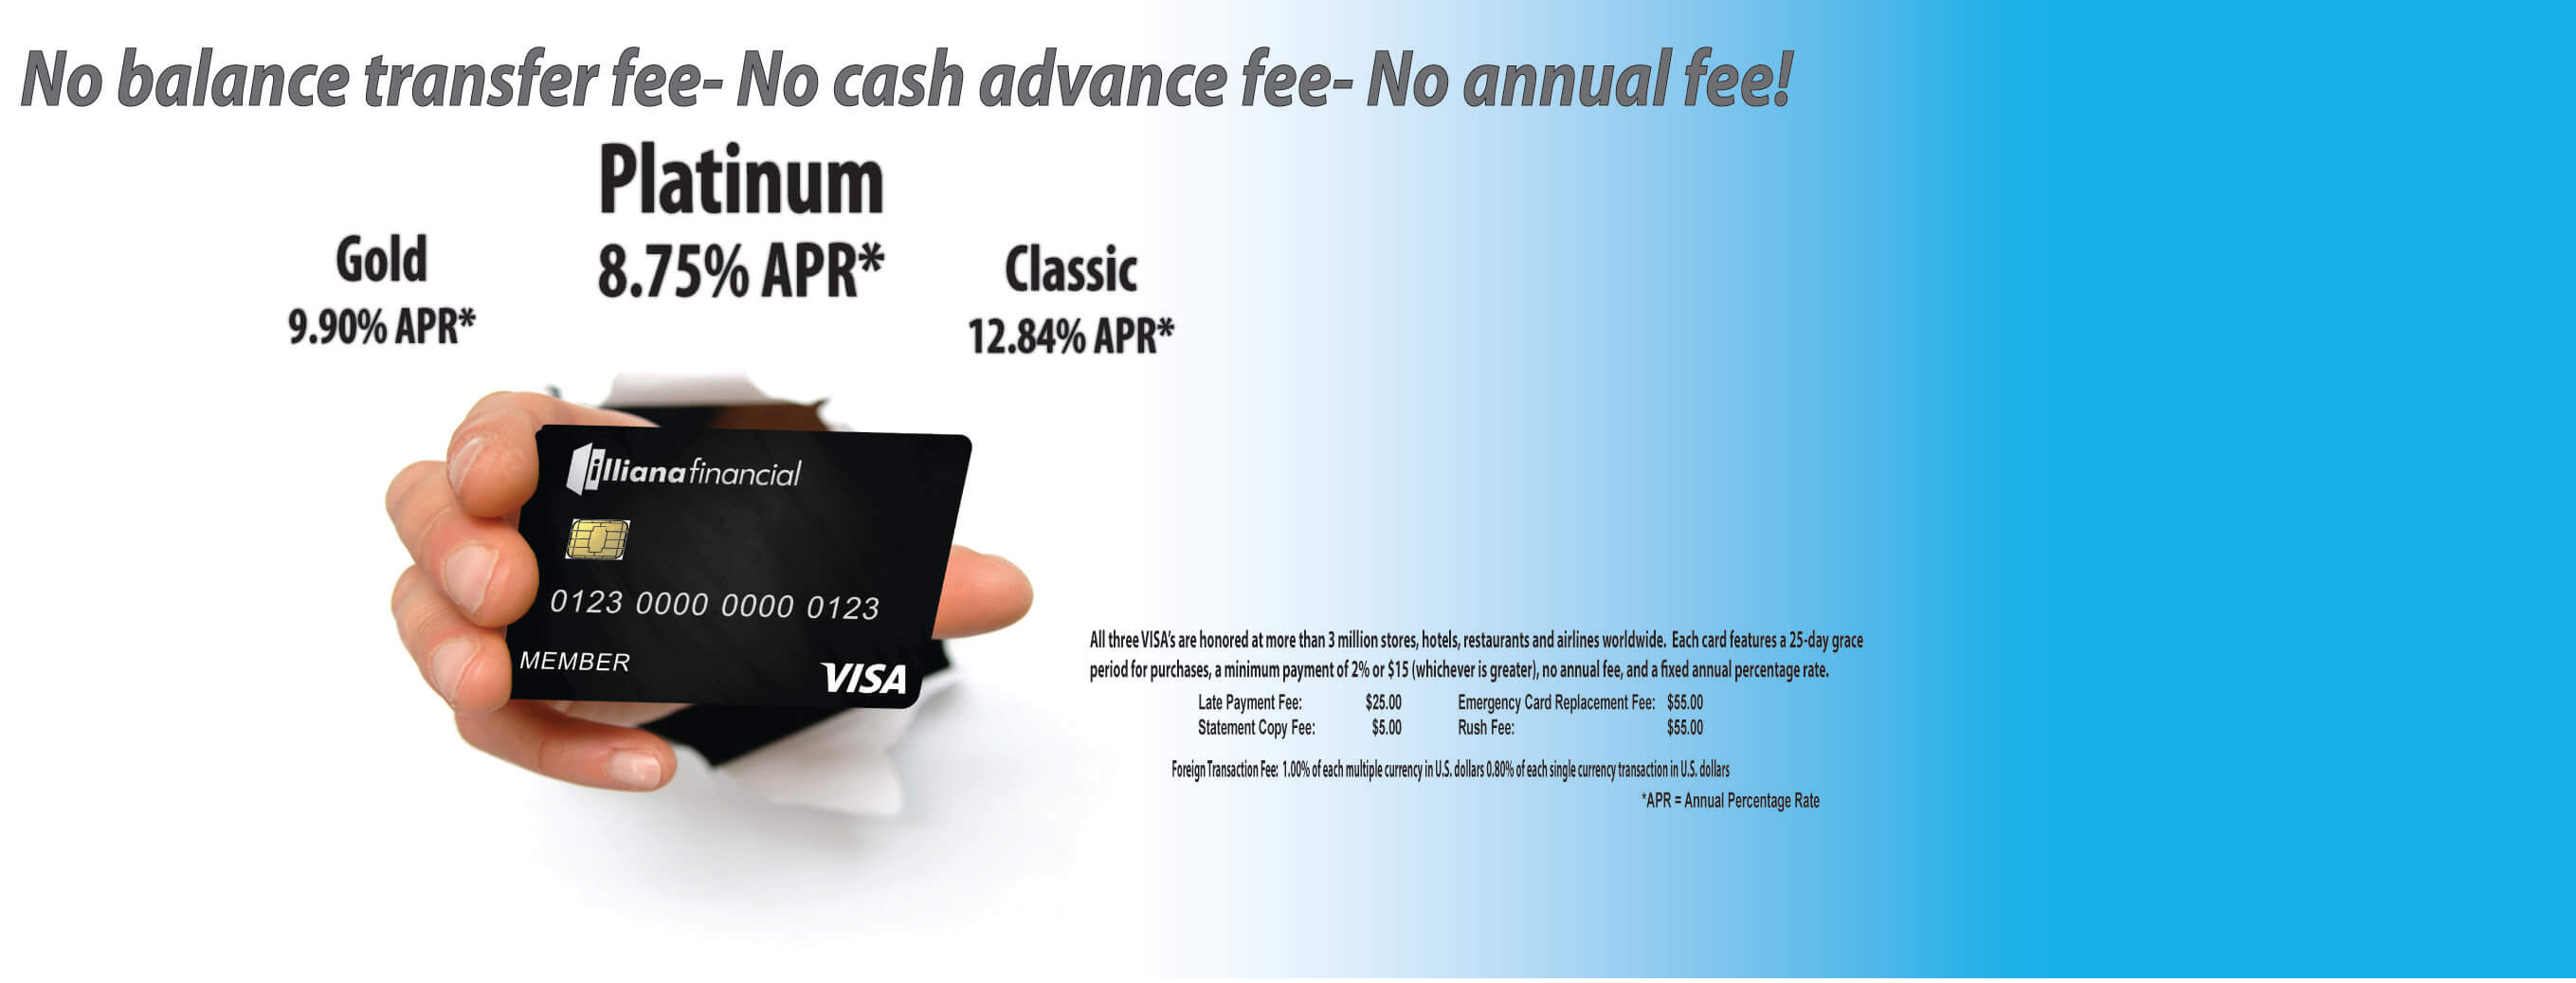 Visa Credit Cards-No balance transfer fee, cash advance or annual fee